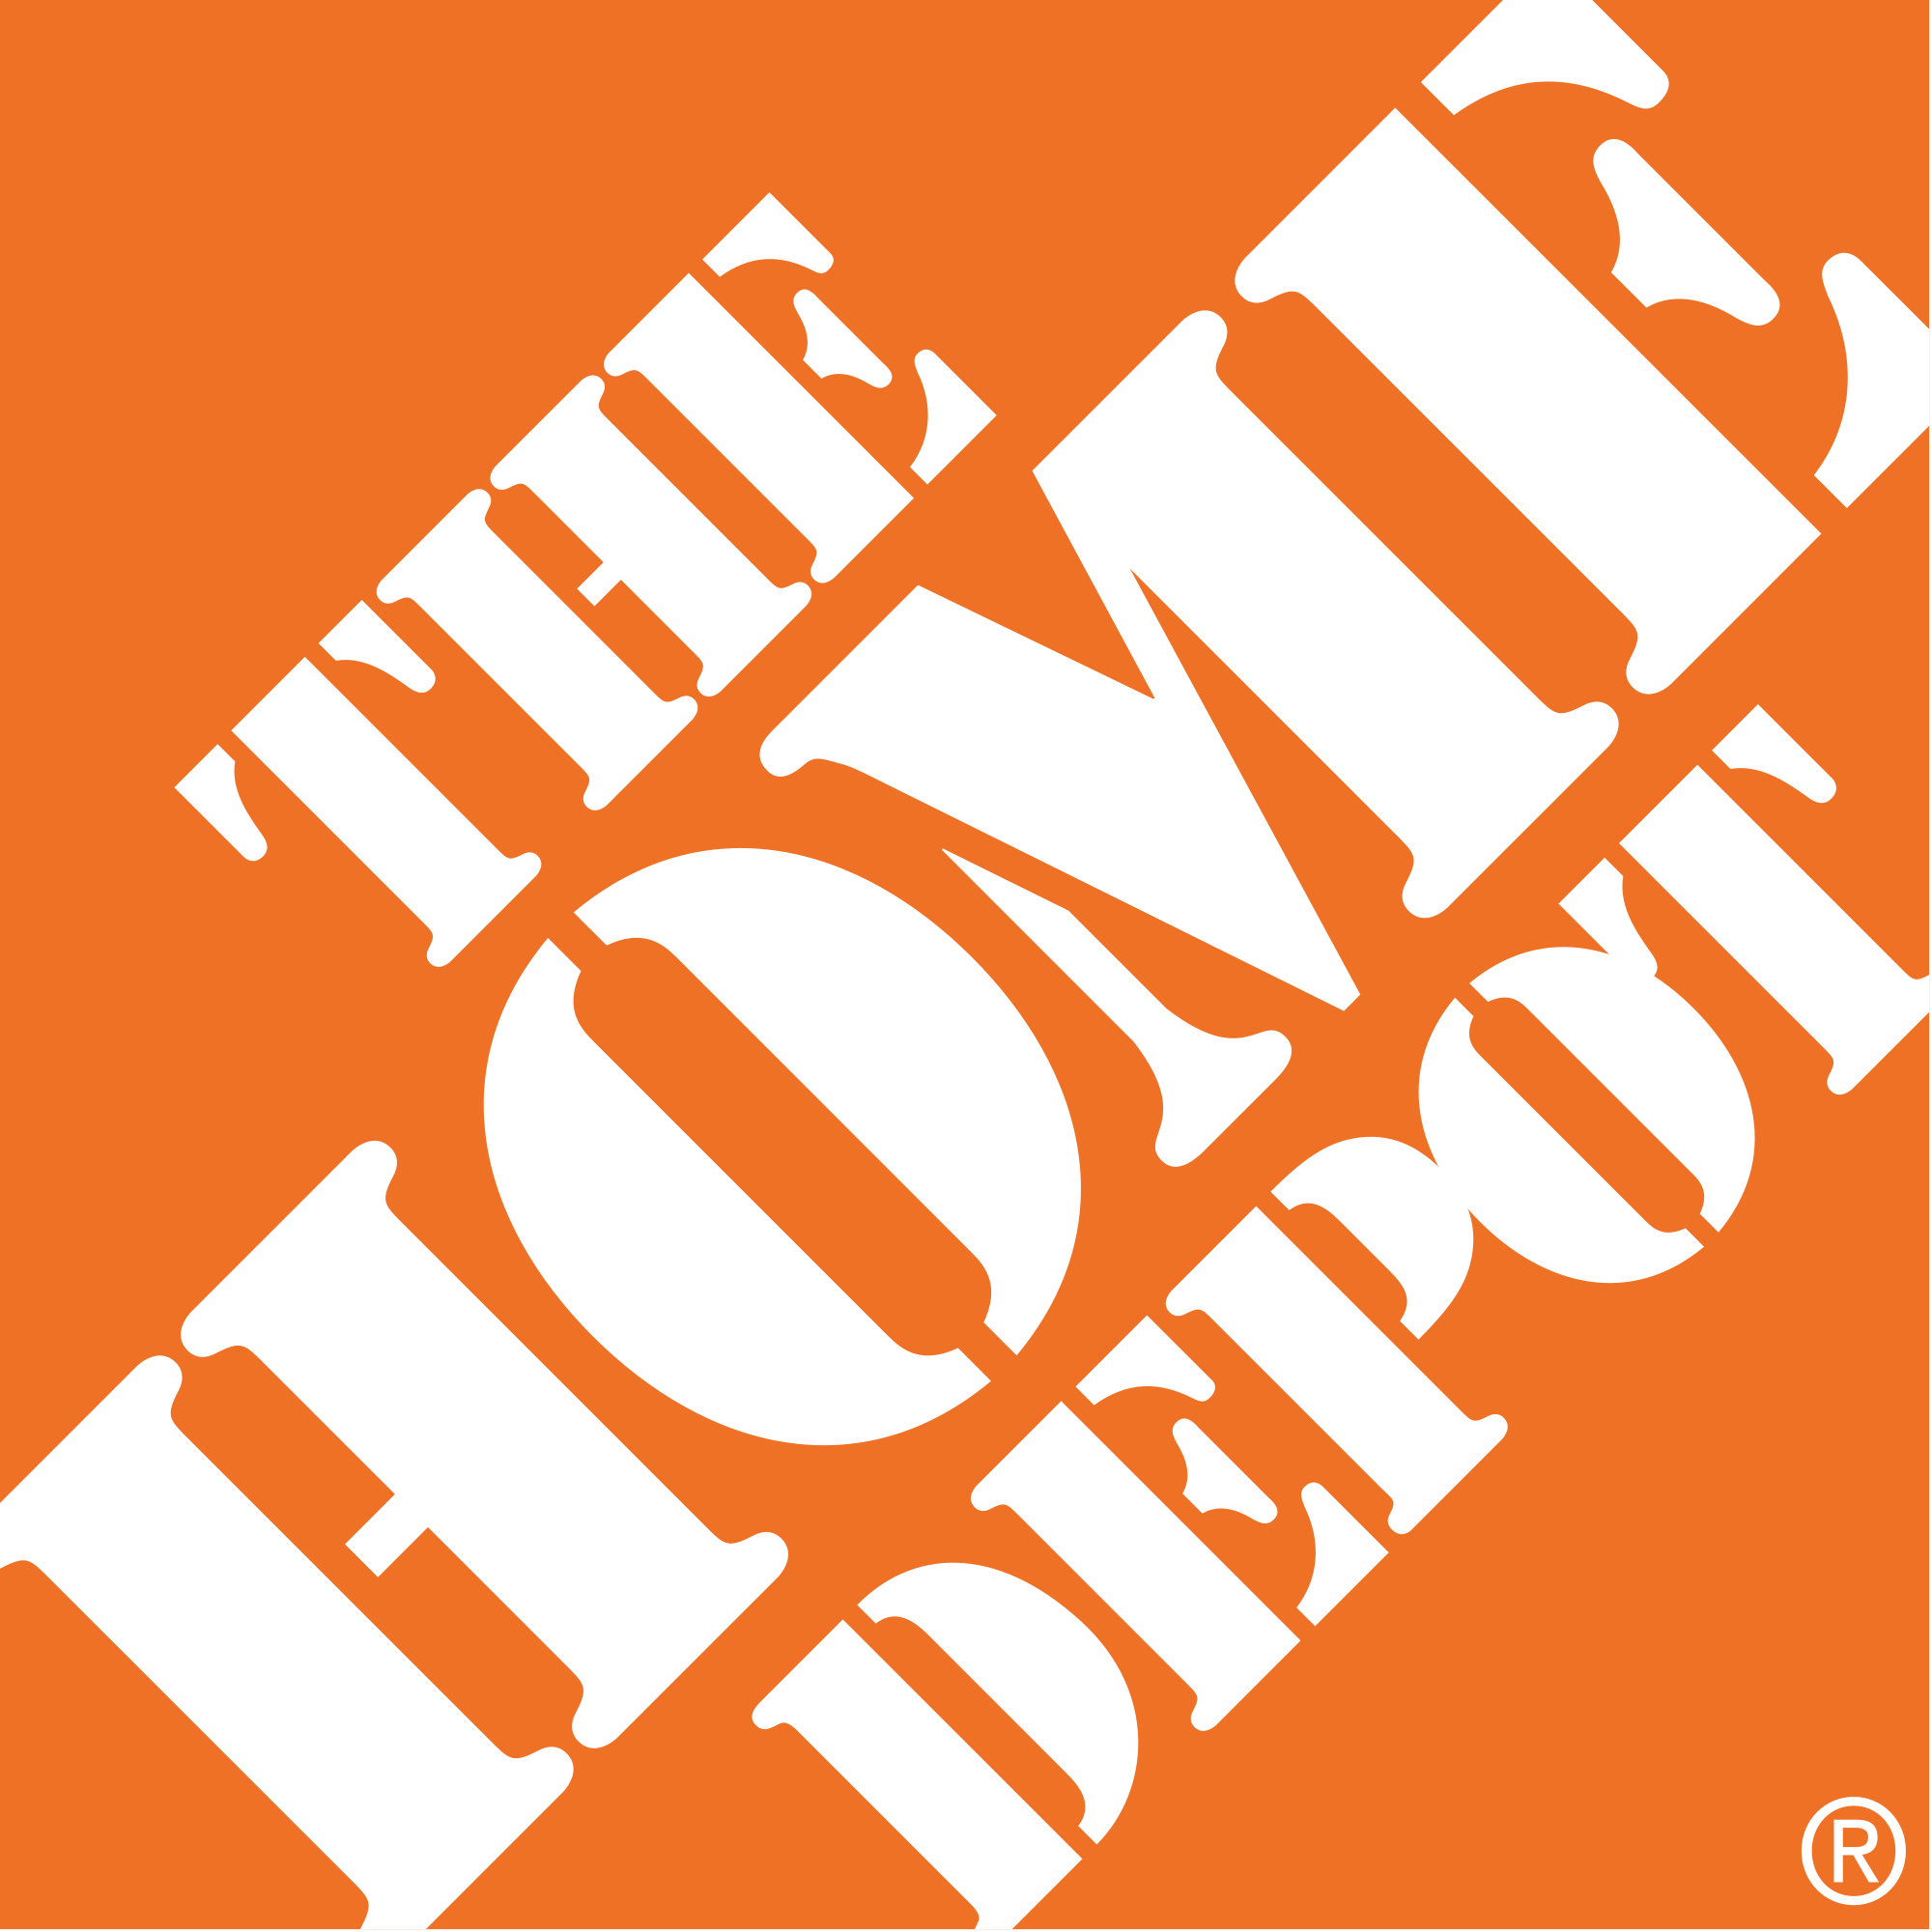 Week Adjourned 10314 Home Depot AMS Mesh Lenovo